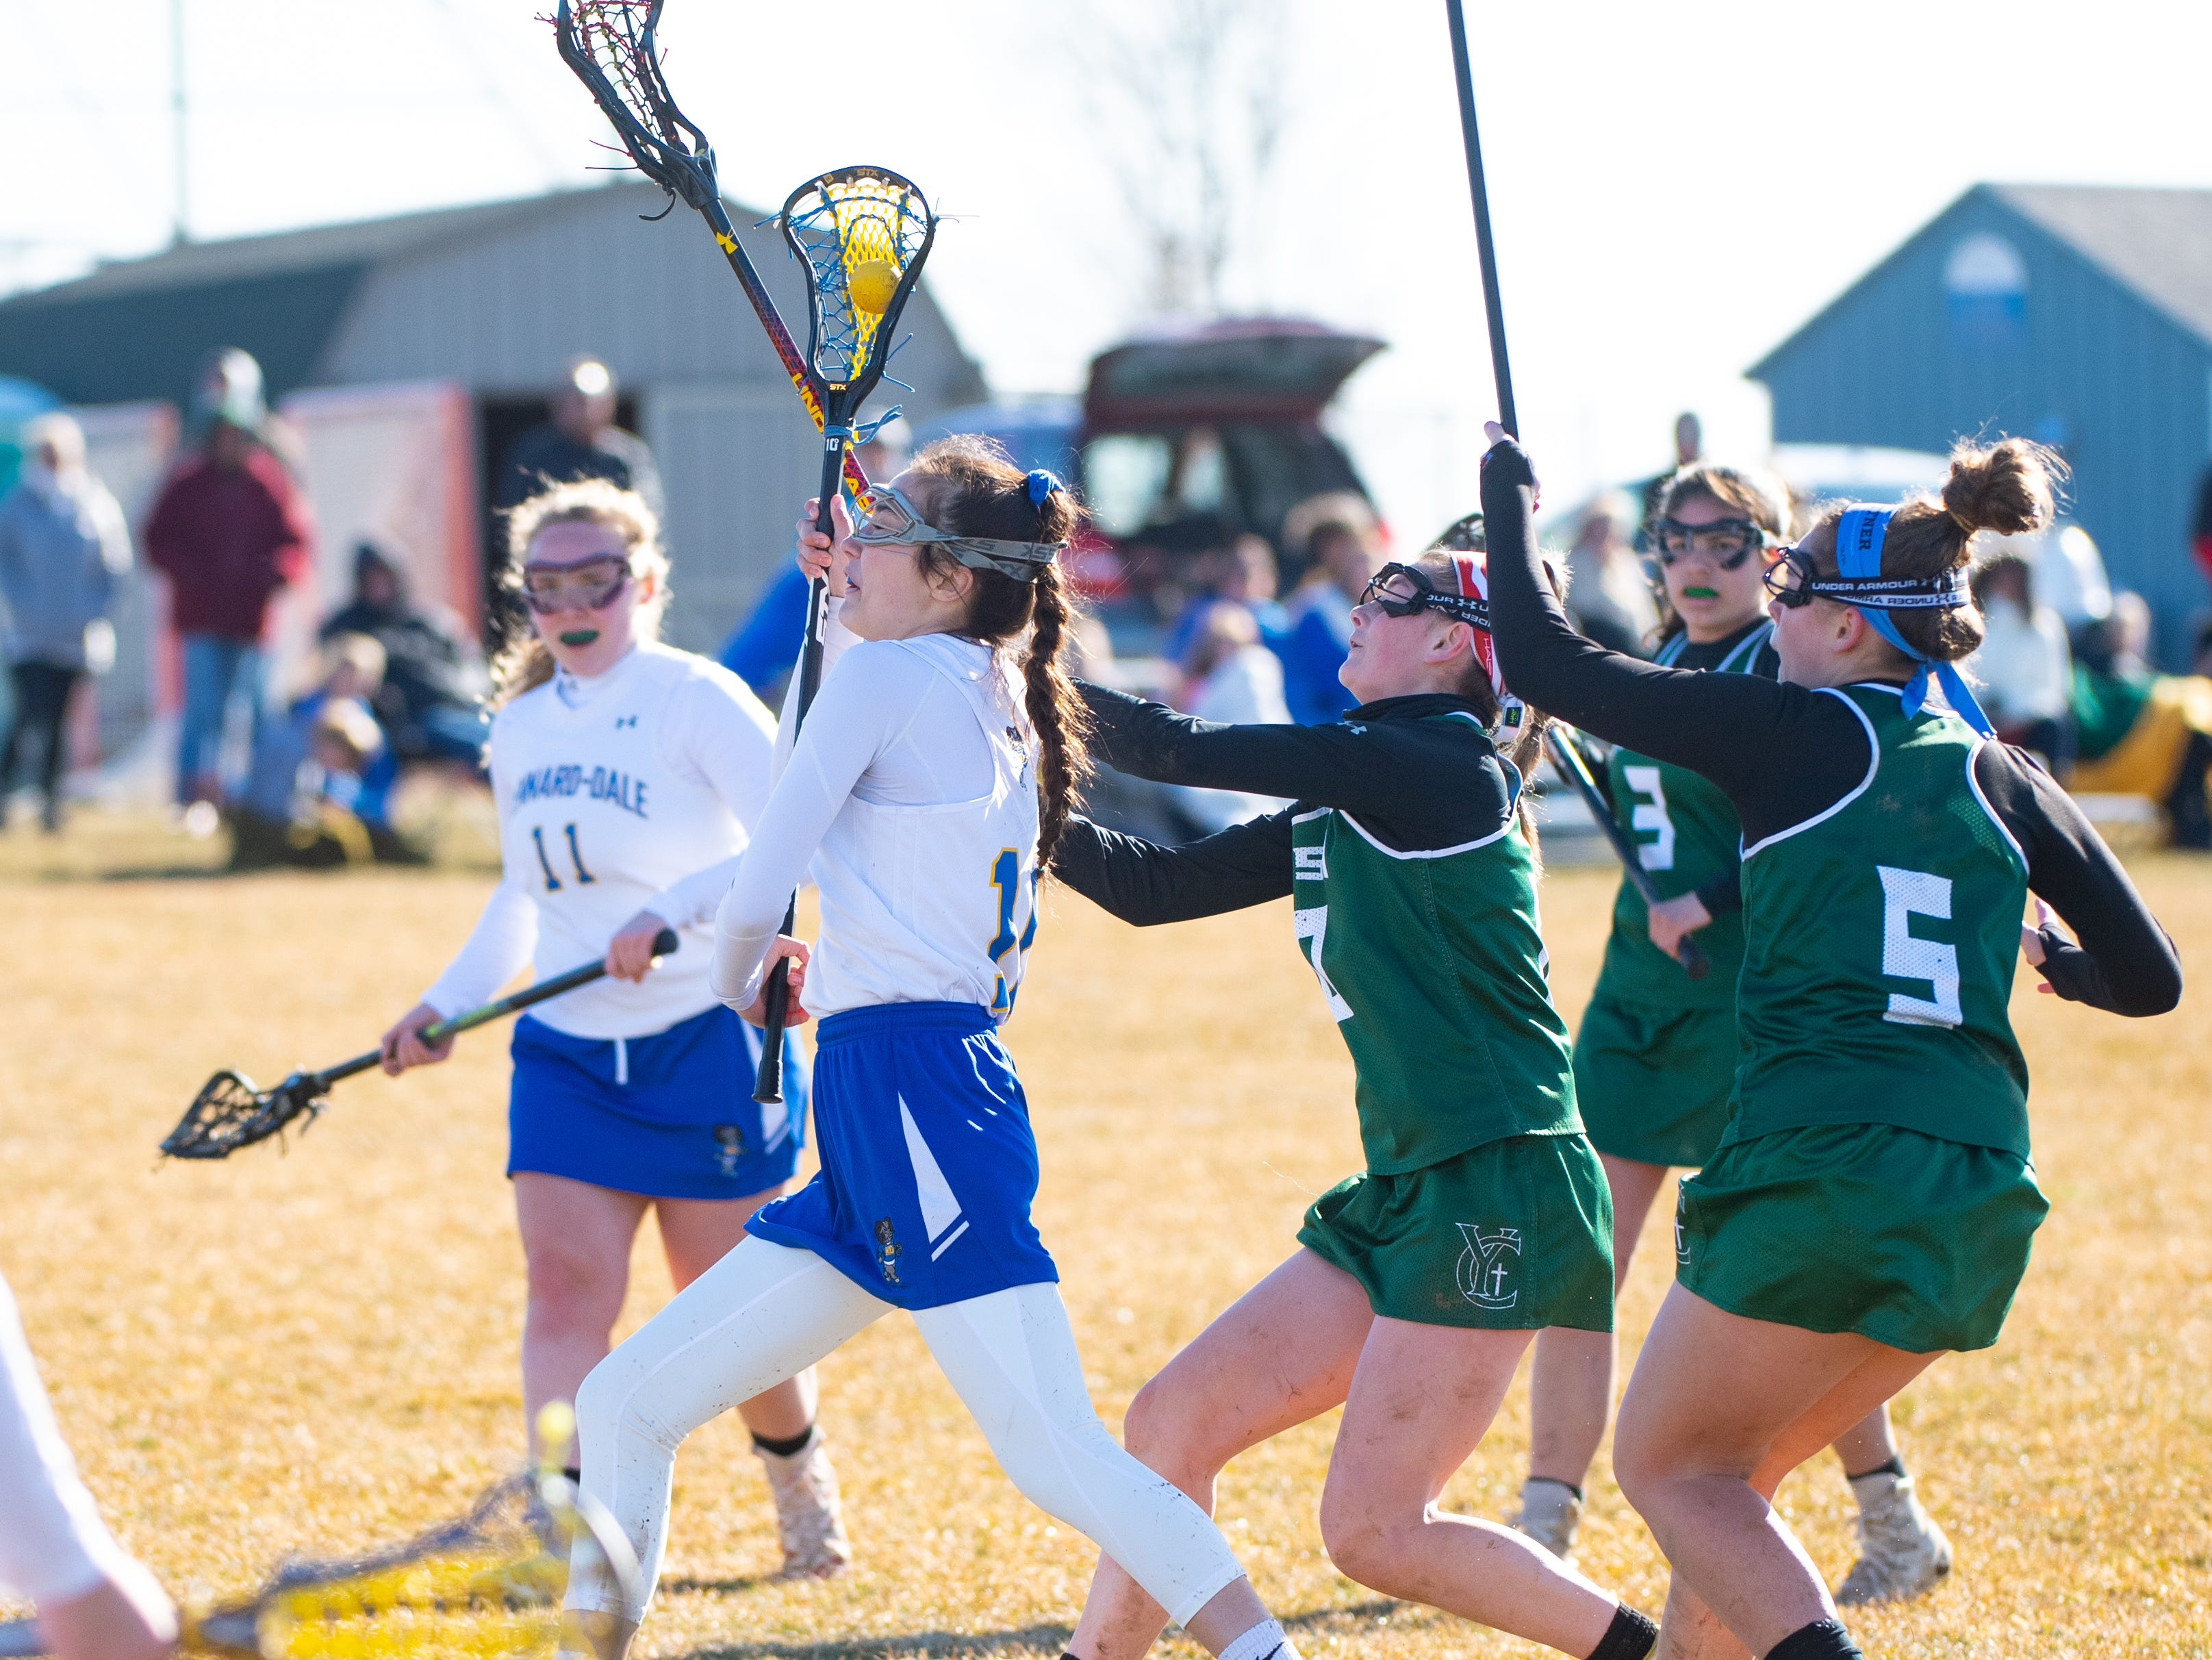 Sydney Mentzer (10) runs towards the net during the girls' lacrosse game between Kennard-Dale and York Catholic, March 26, 2019 at Kennard-Dale High School. The Fighting Irish defeated the Rams 10 to 9.